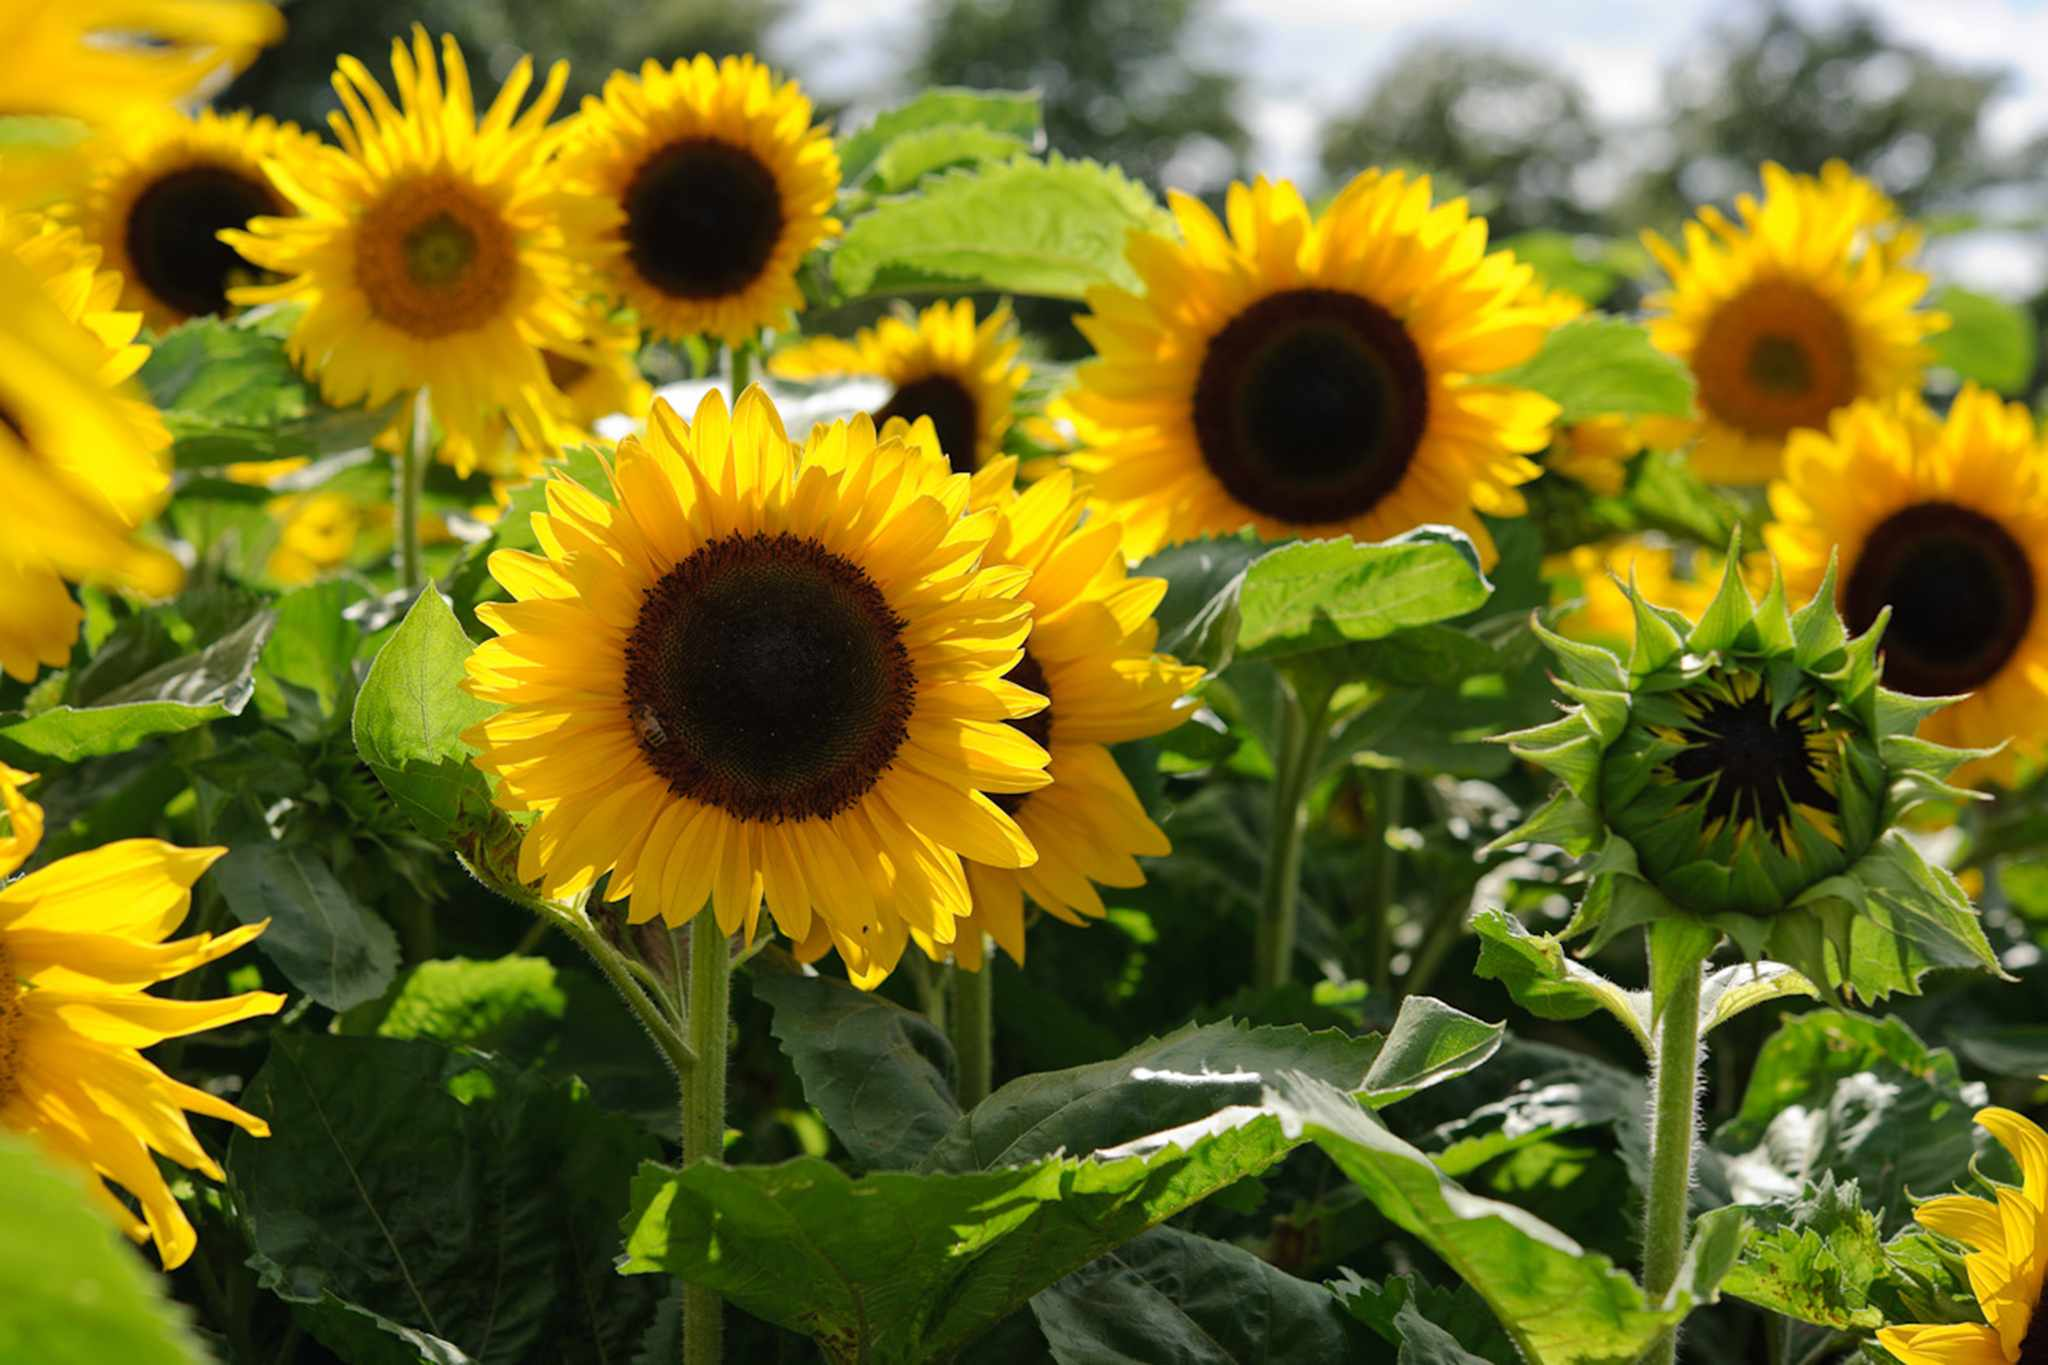 Flowers to pick in August - sunflowers